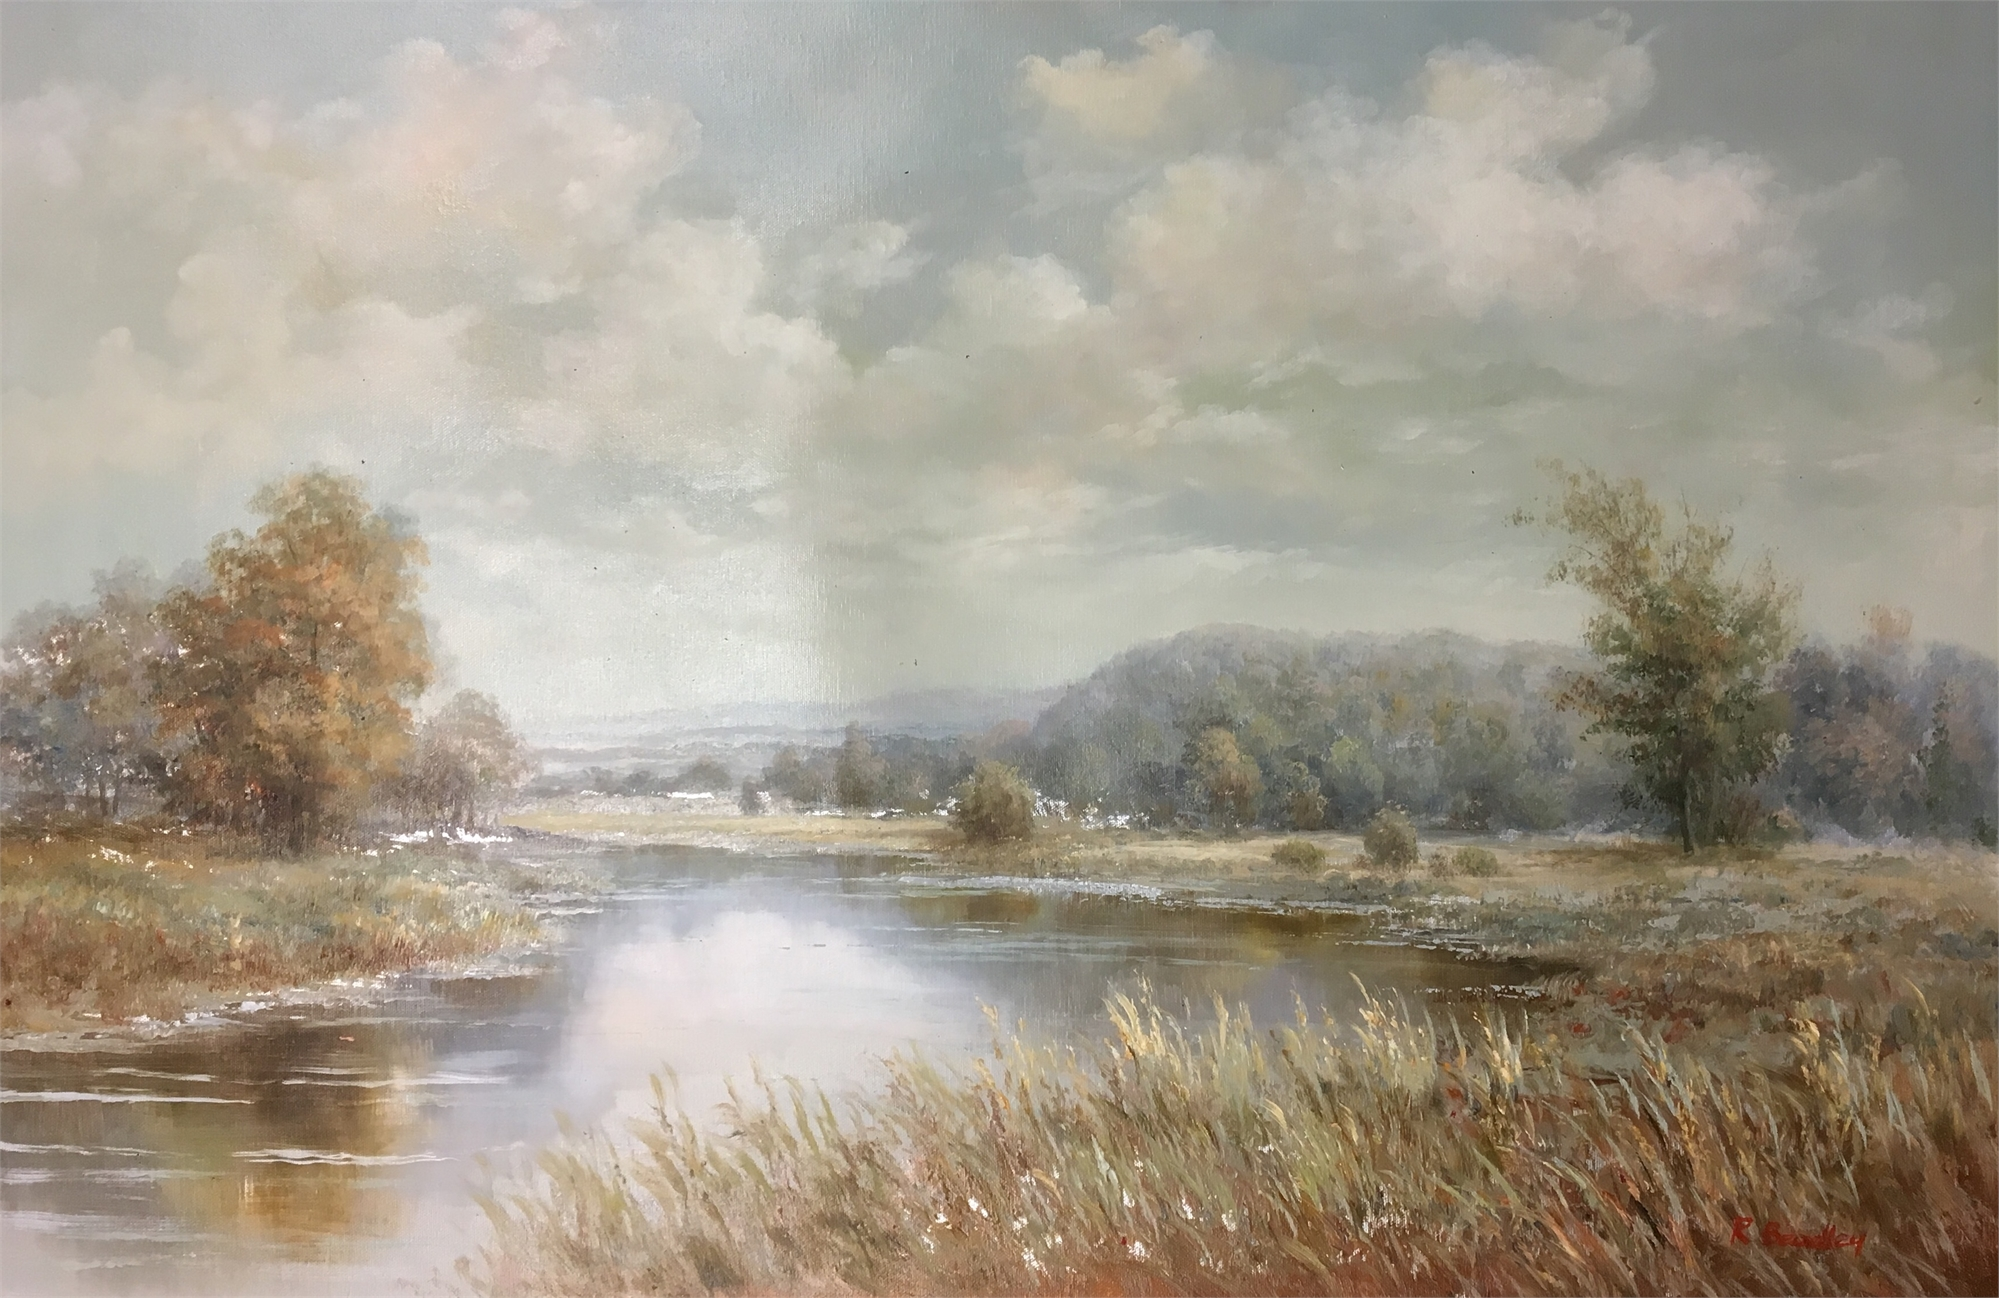 SLOW RIVER THROUGH VALLEY by R BRADLEY